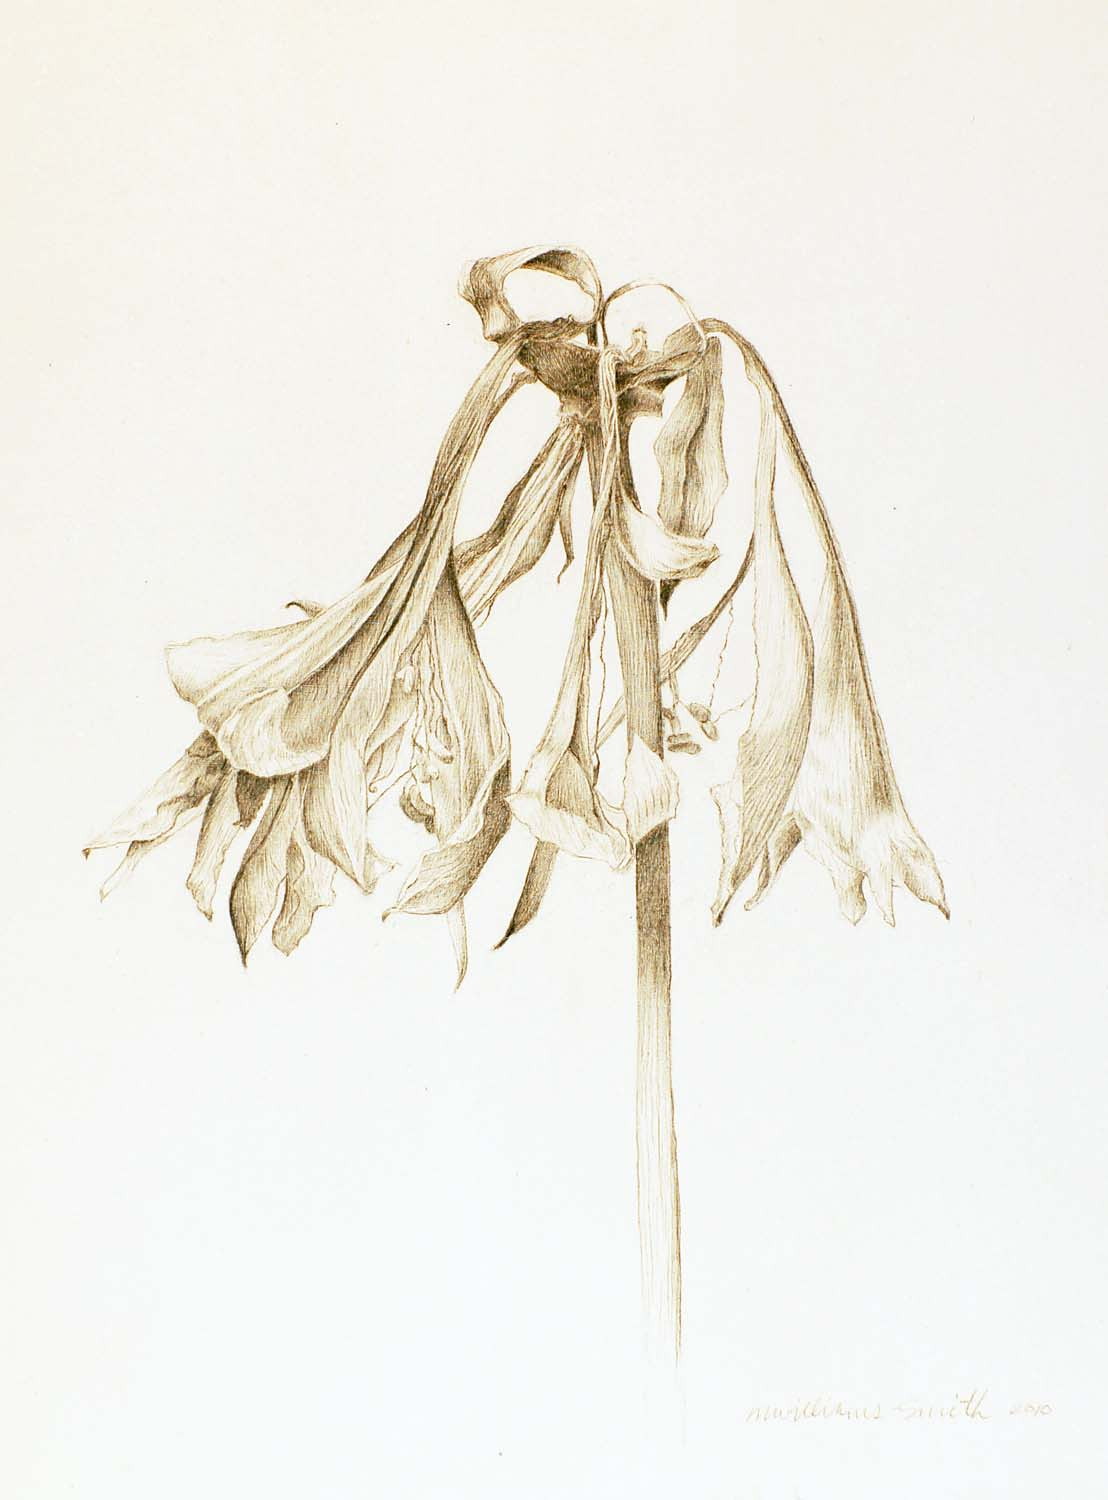 Marjorie Williams-Smith Amaryllis, 2010 Silverpoint on Gesso 9 3/4 x 9